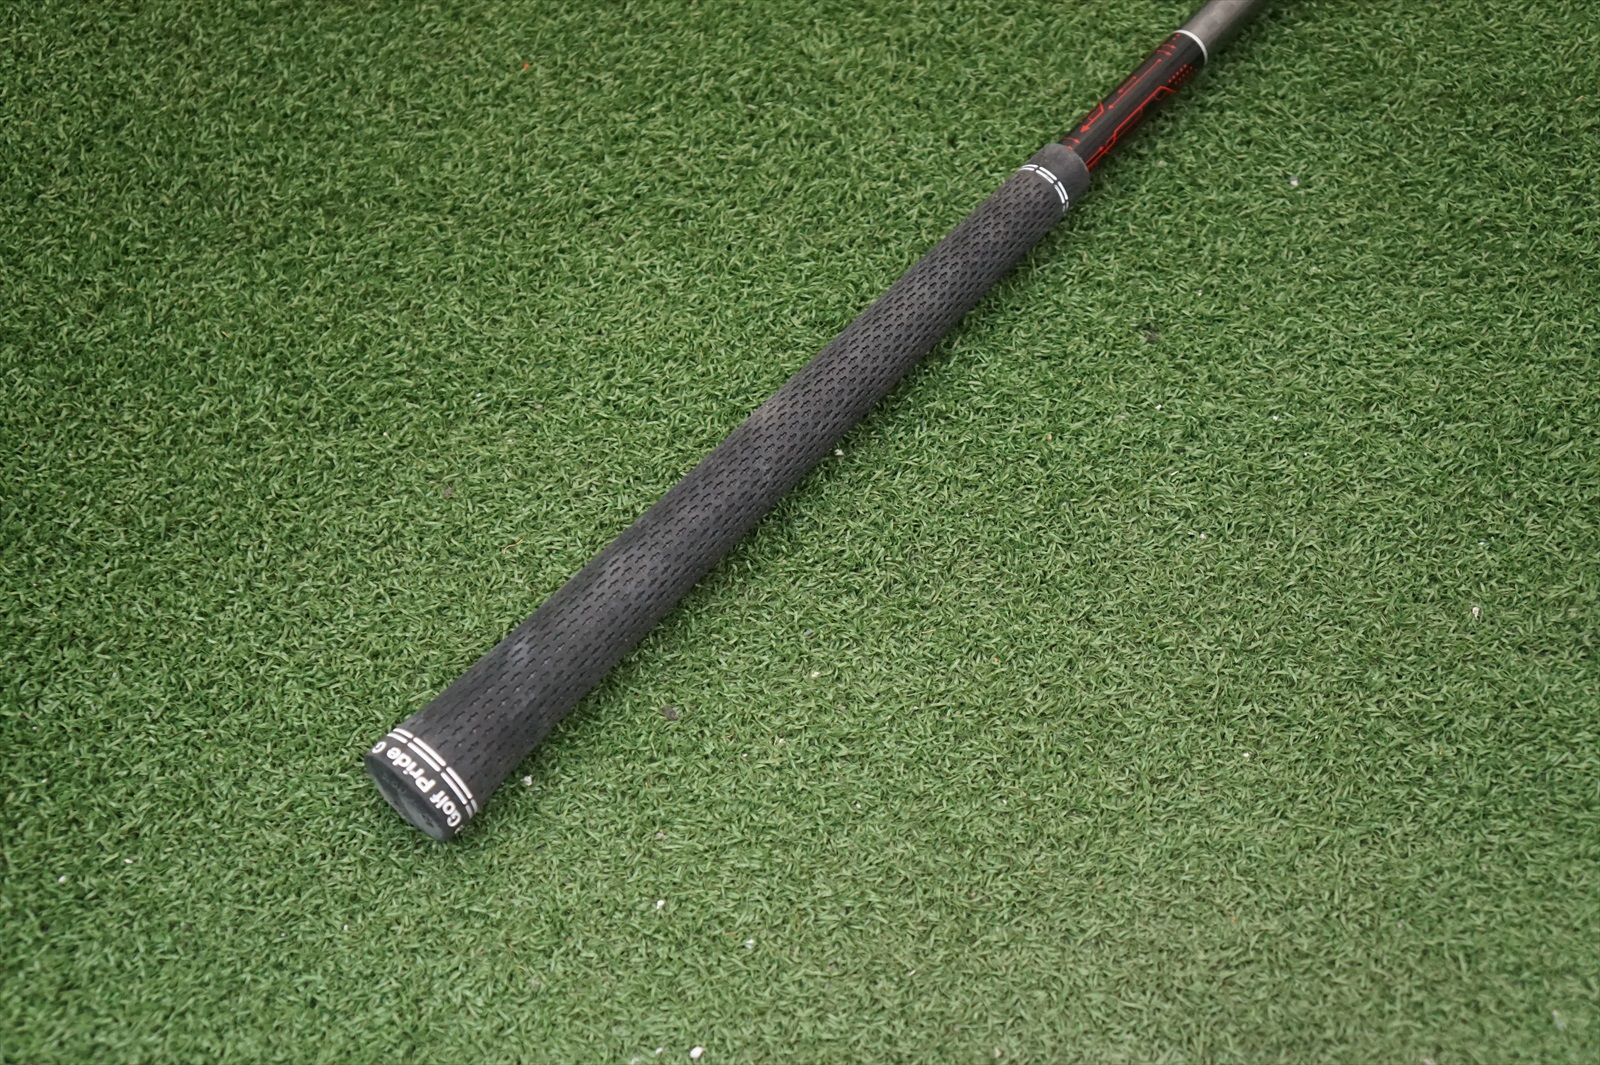 Aldila Rogue Max 75 S Stiff Fairway Wood Shaft Pull 41 75